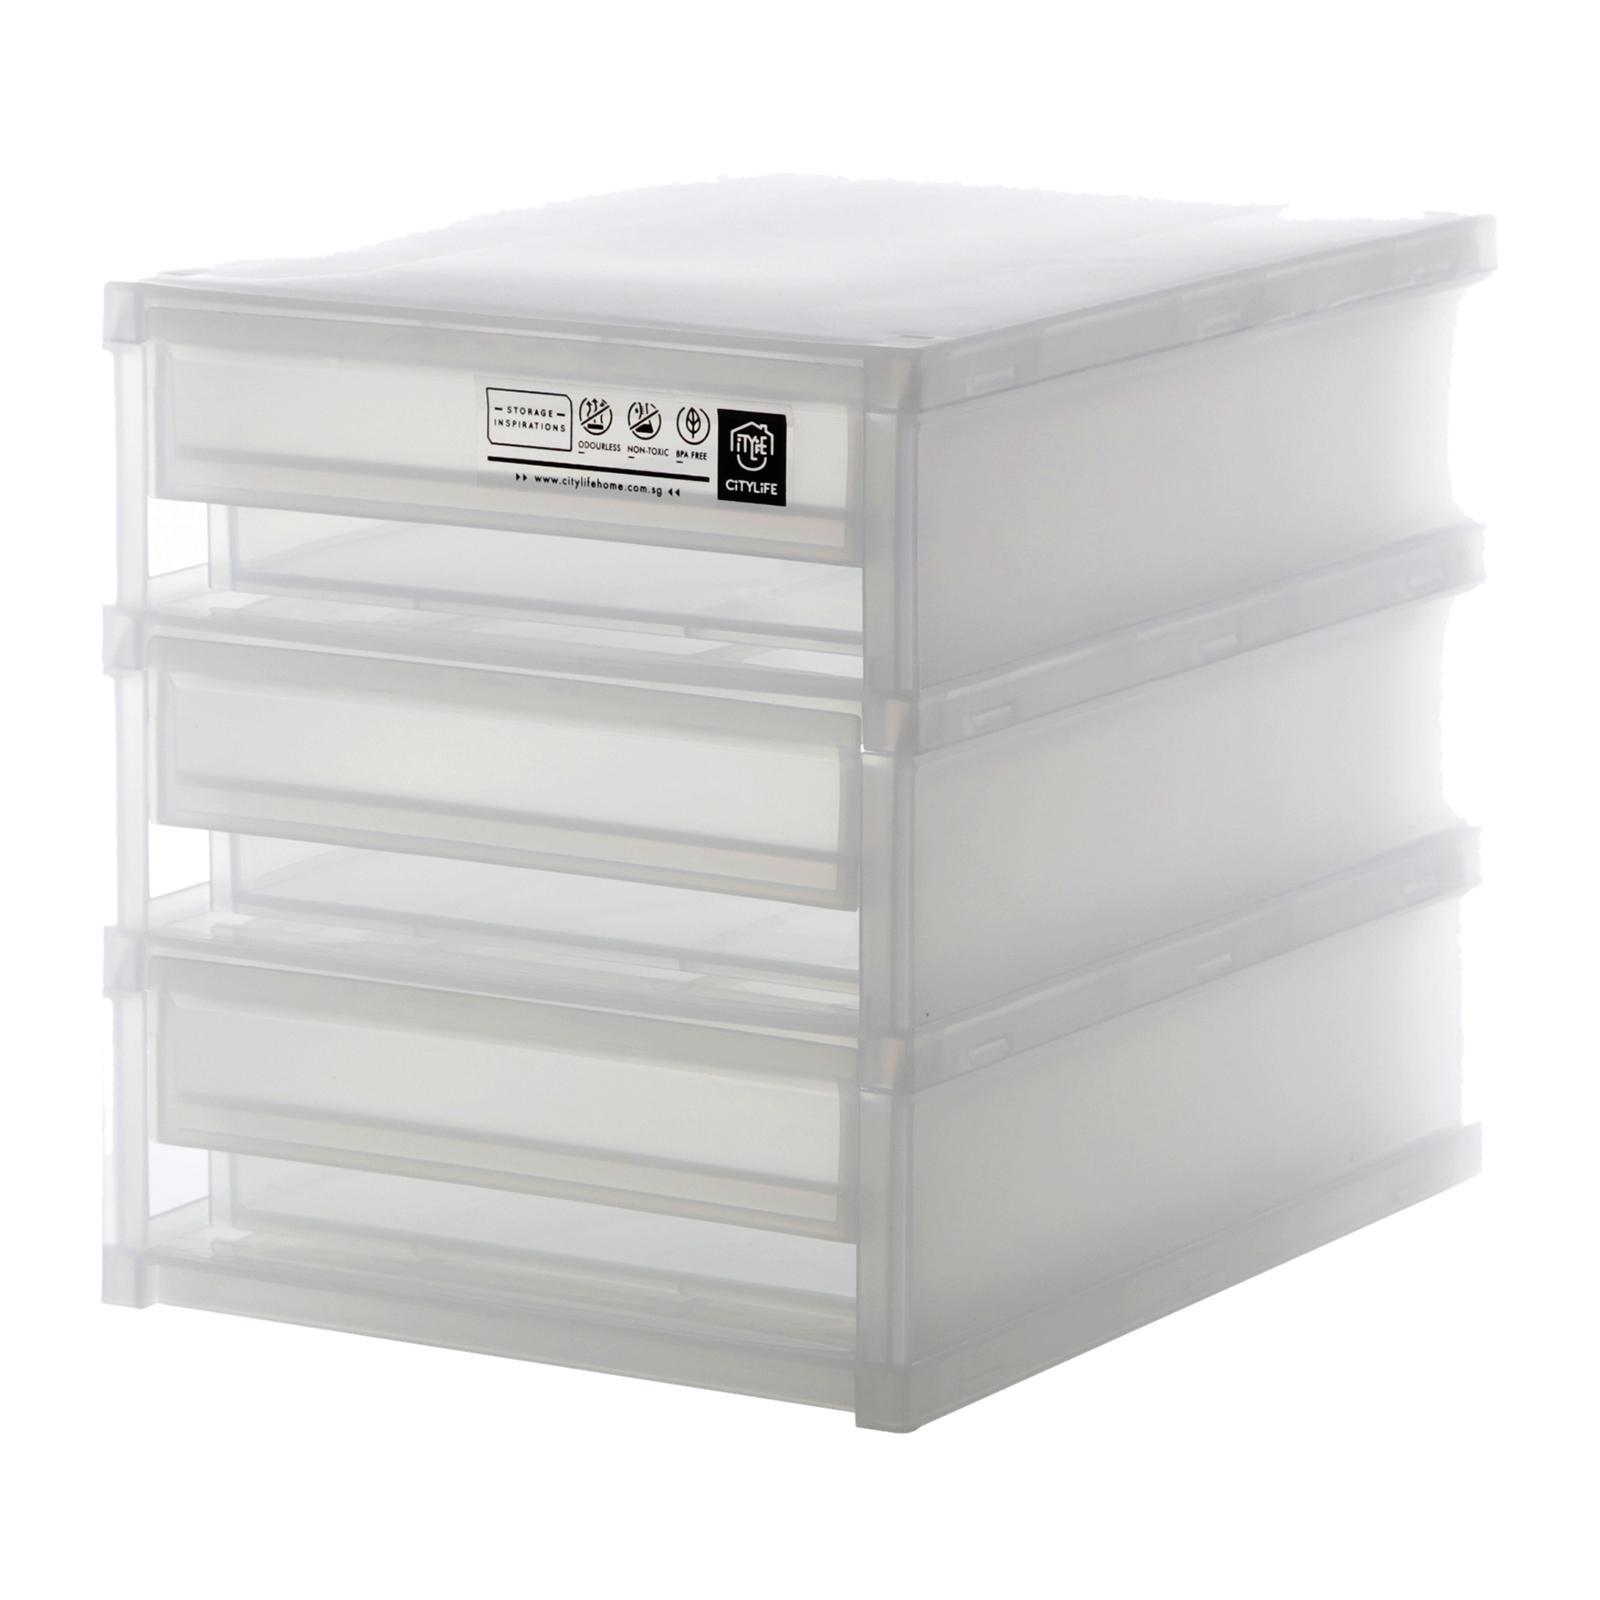 CITYLIFE Frost Mini 3 Tier Cabinet (Small)